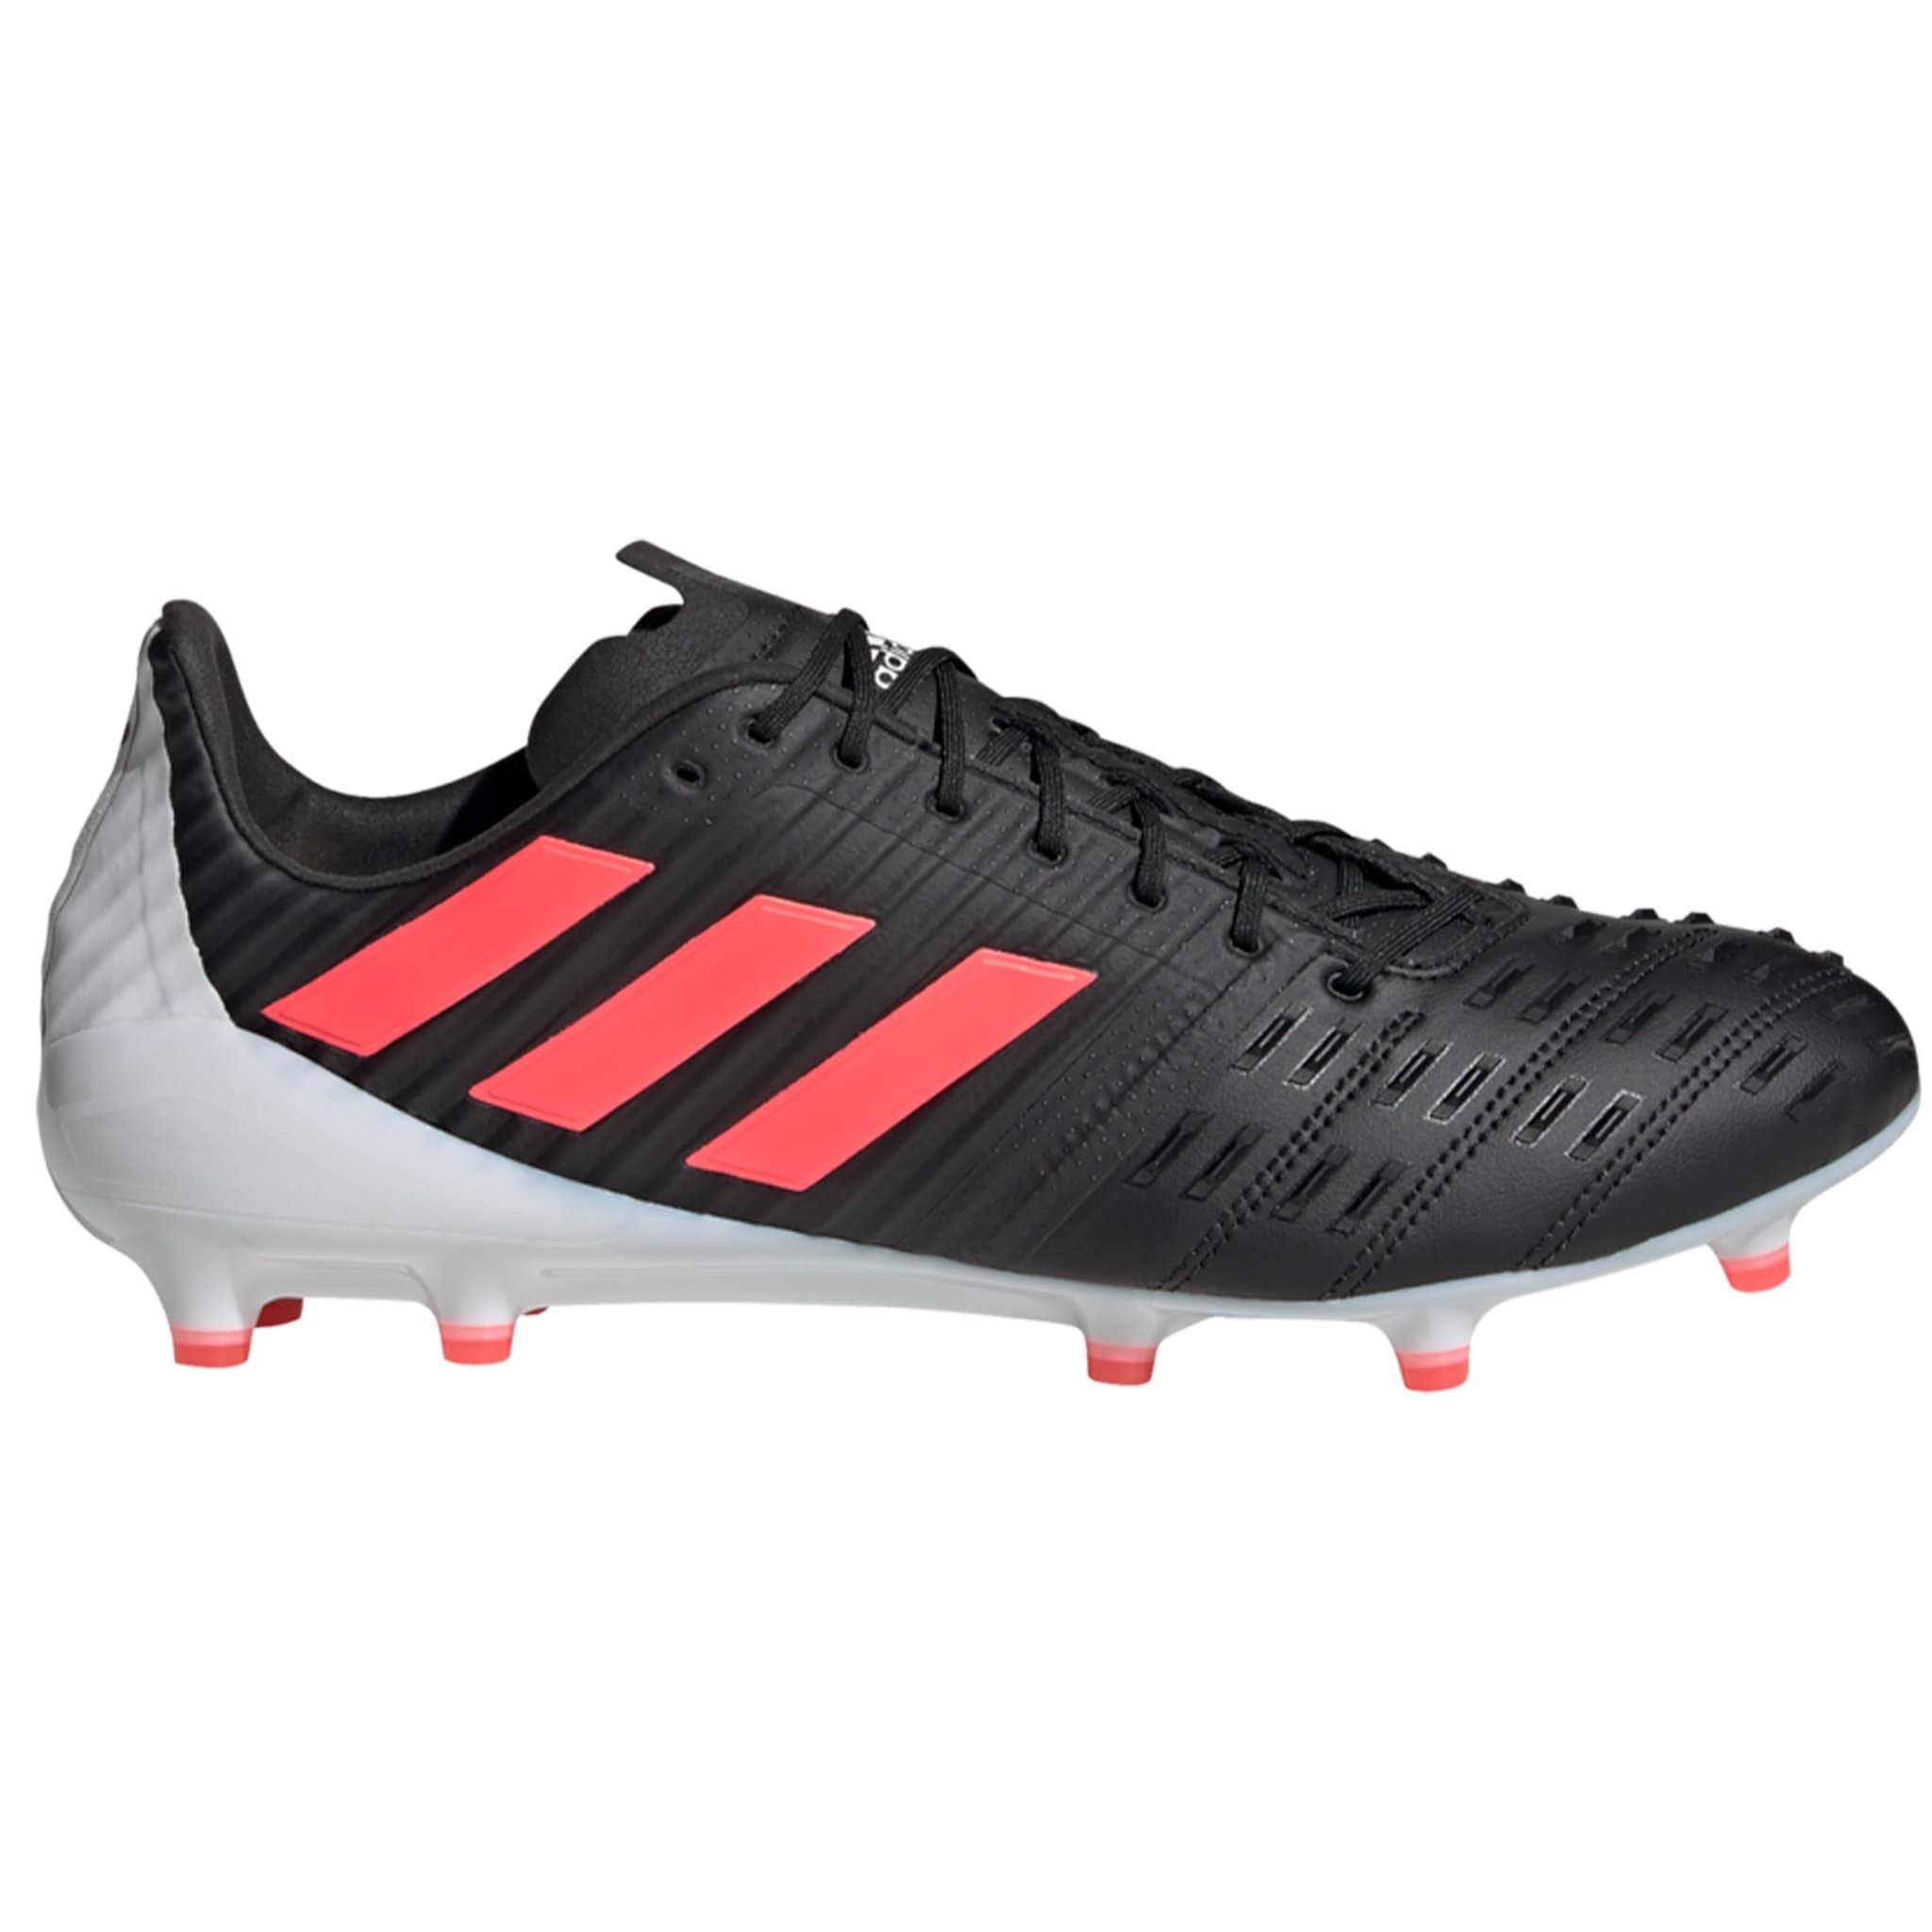 Side View Black Adidas Rugby Boot with Pink Stripes